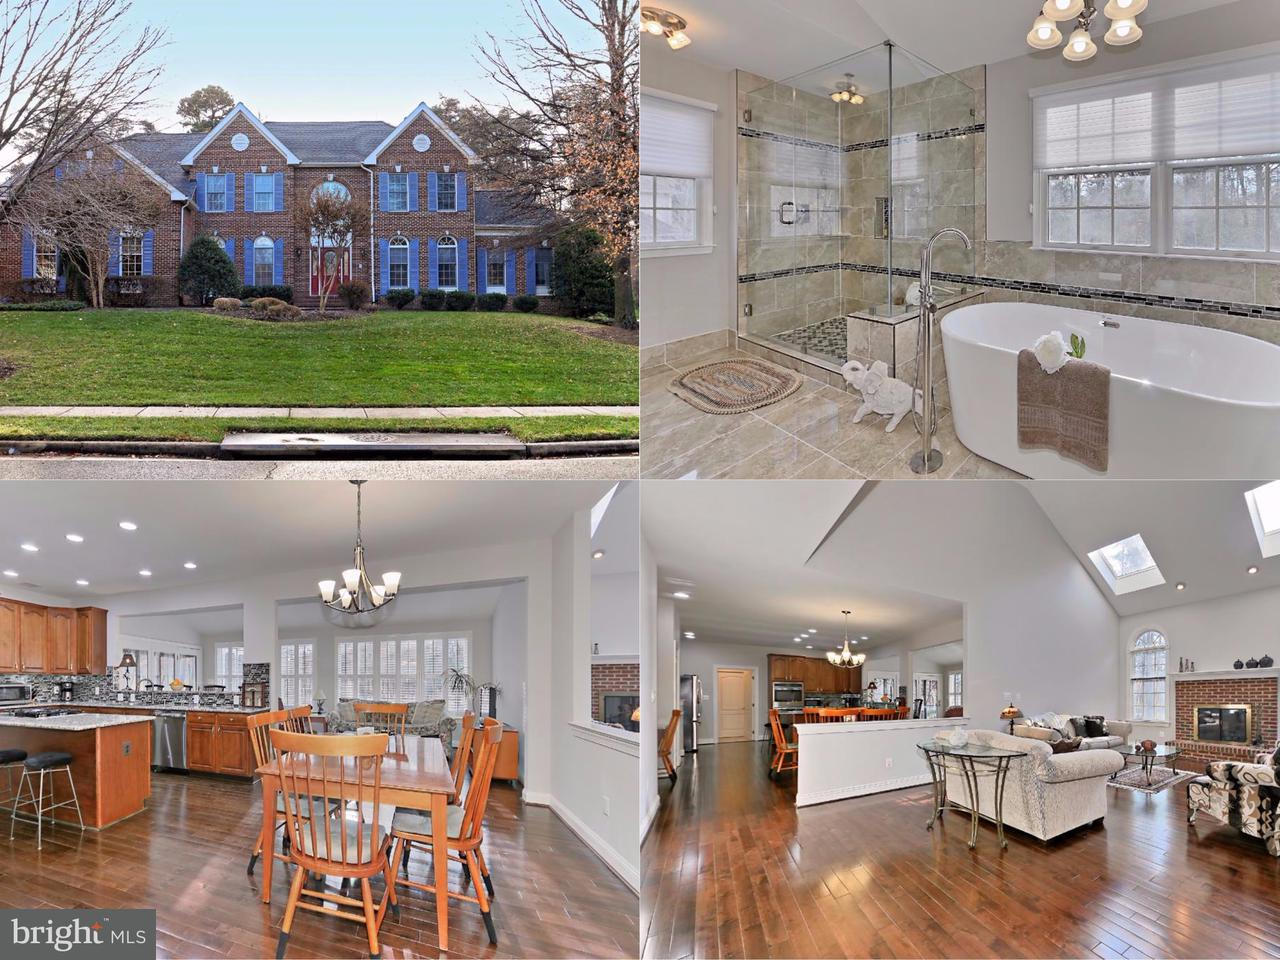 Casa Unifamiliar por un Venta en 12845 PARAPET WAY 12845 PARAPET WAY Oak Hill, Virginia 20171 Estados Unidos